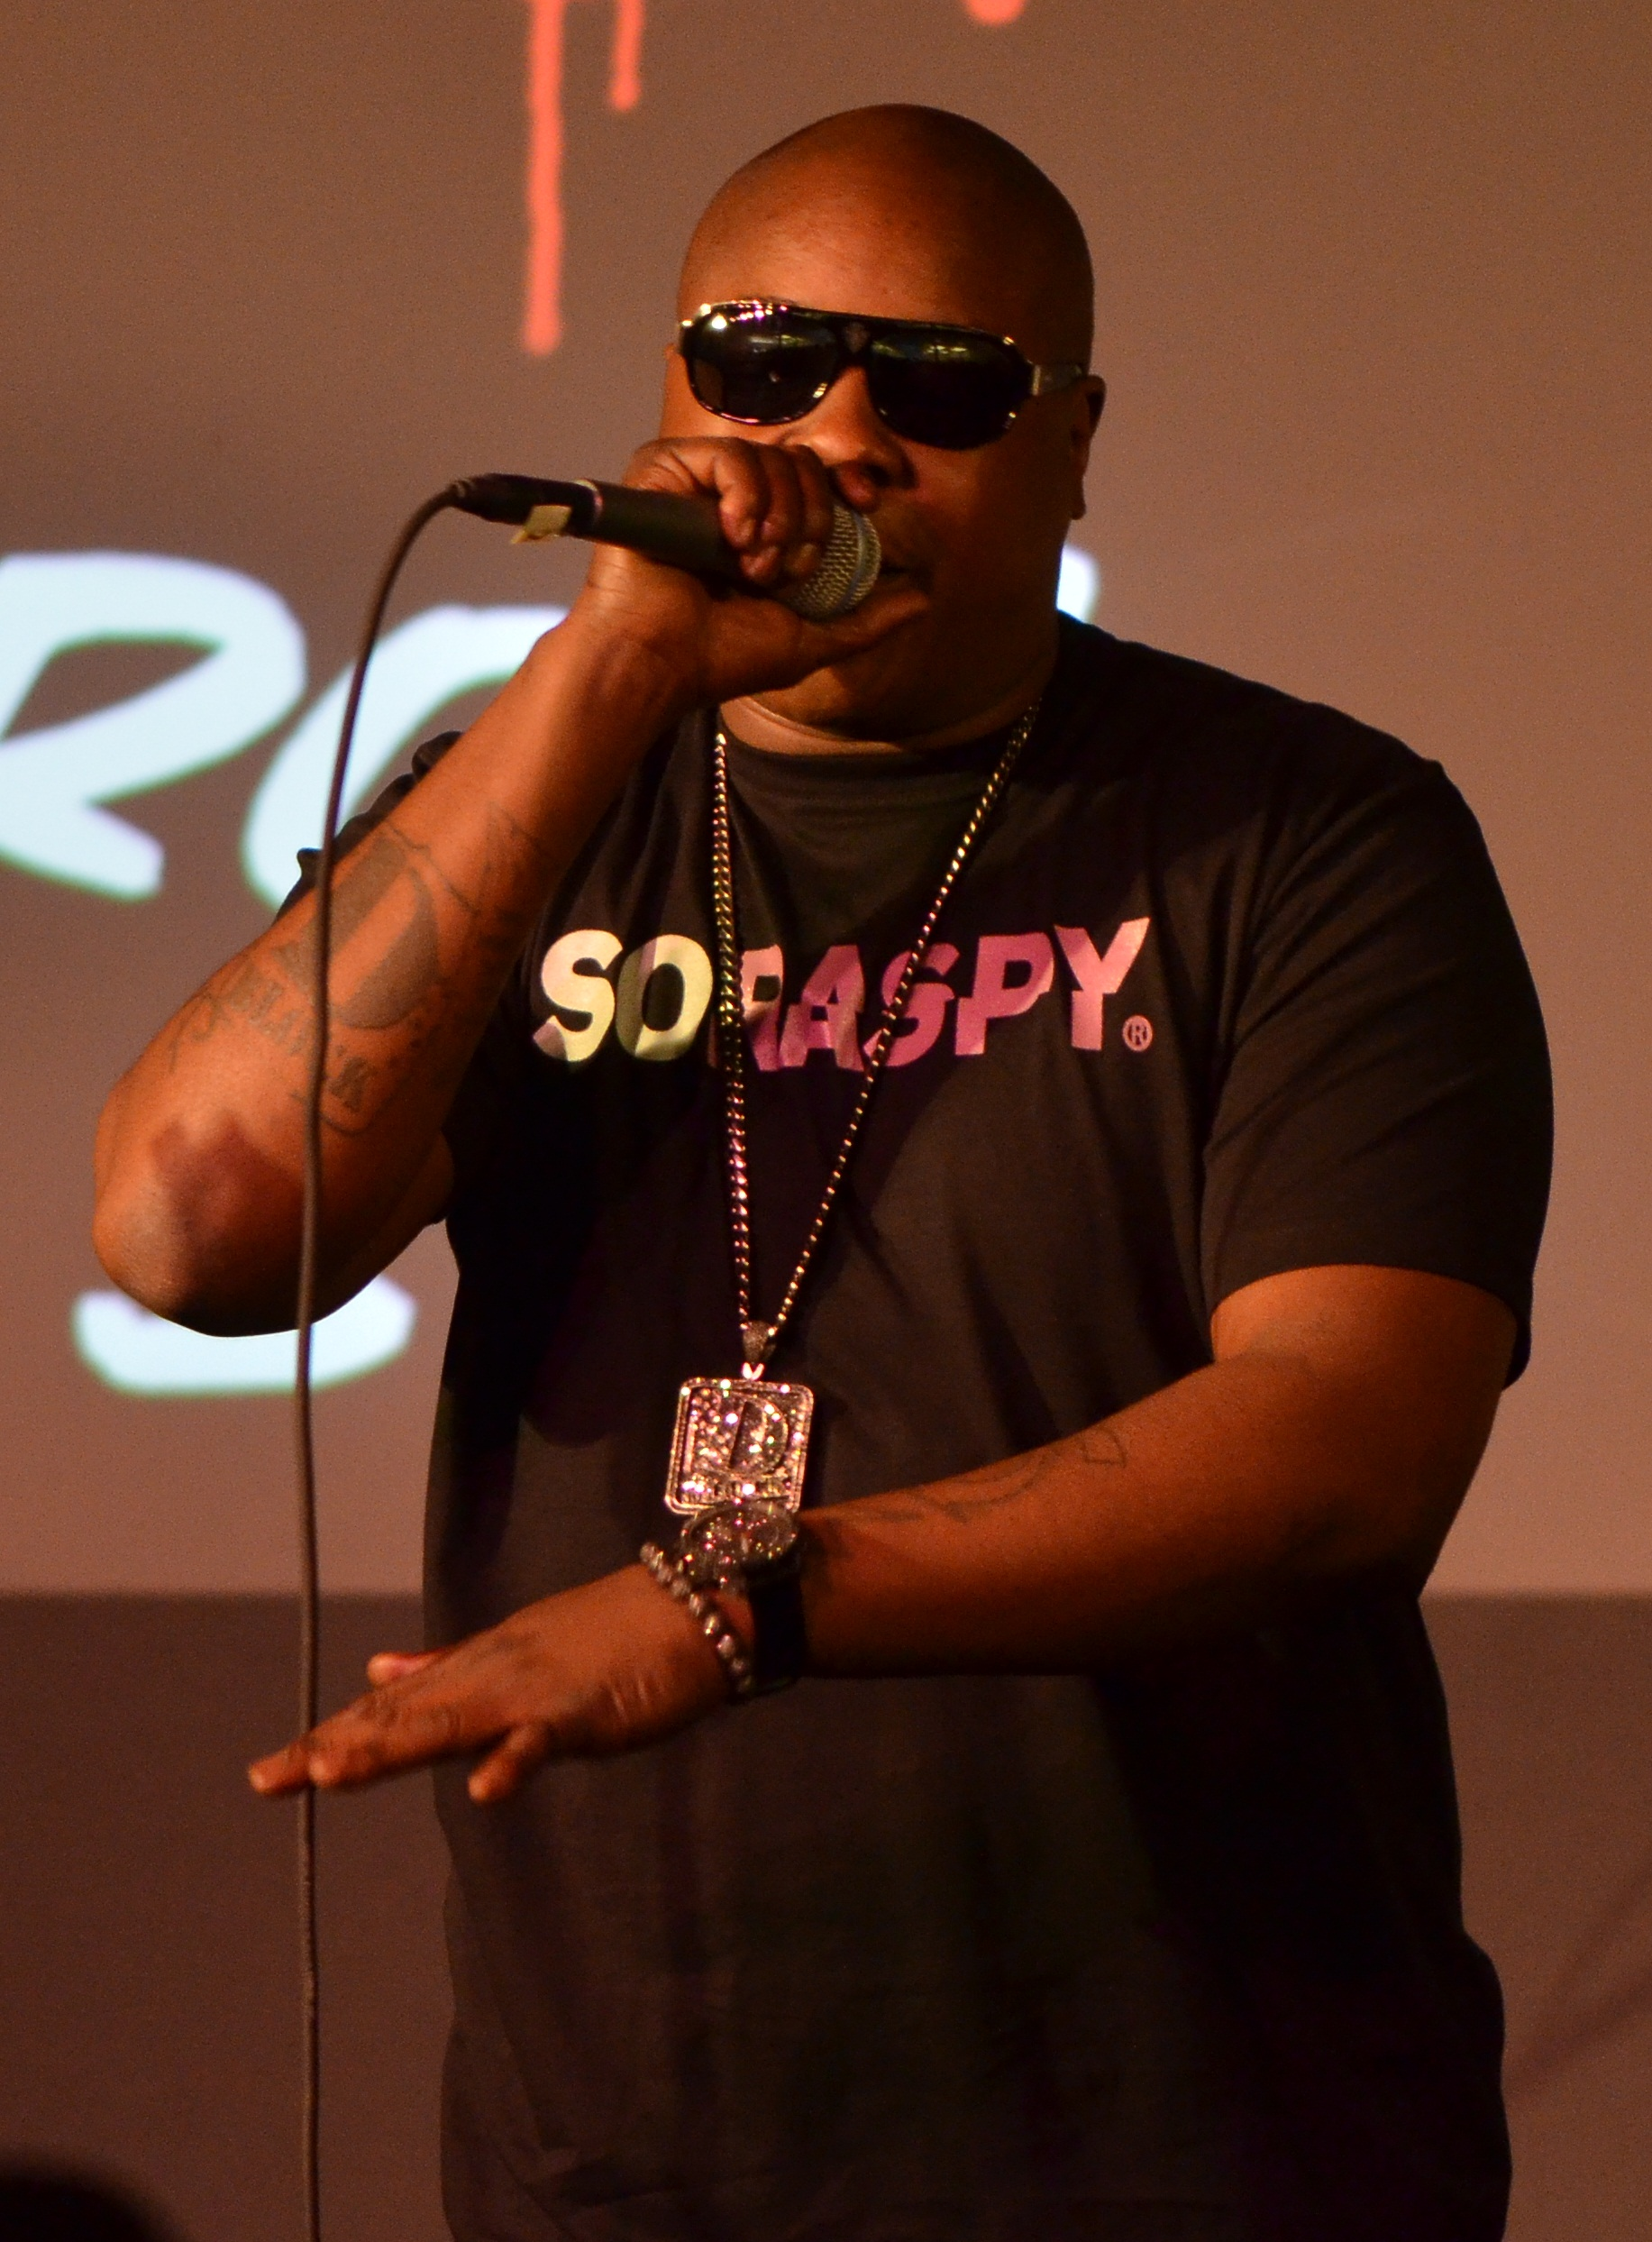 jadakiss-so-raspy-d-block-black-diamonds-chain-bead-bracelet-jacob